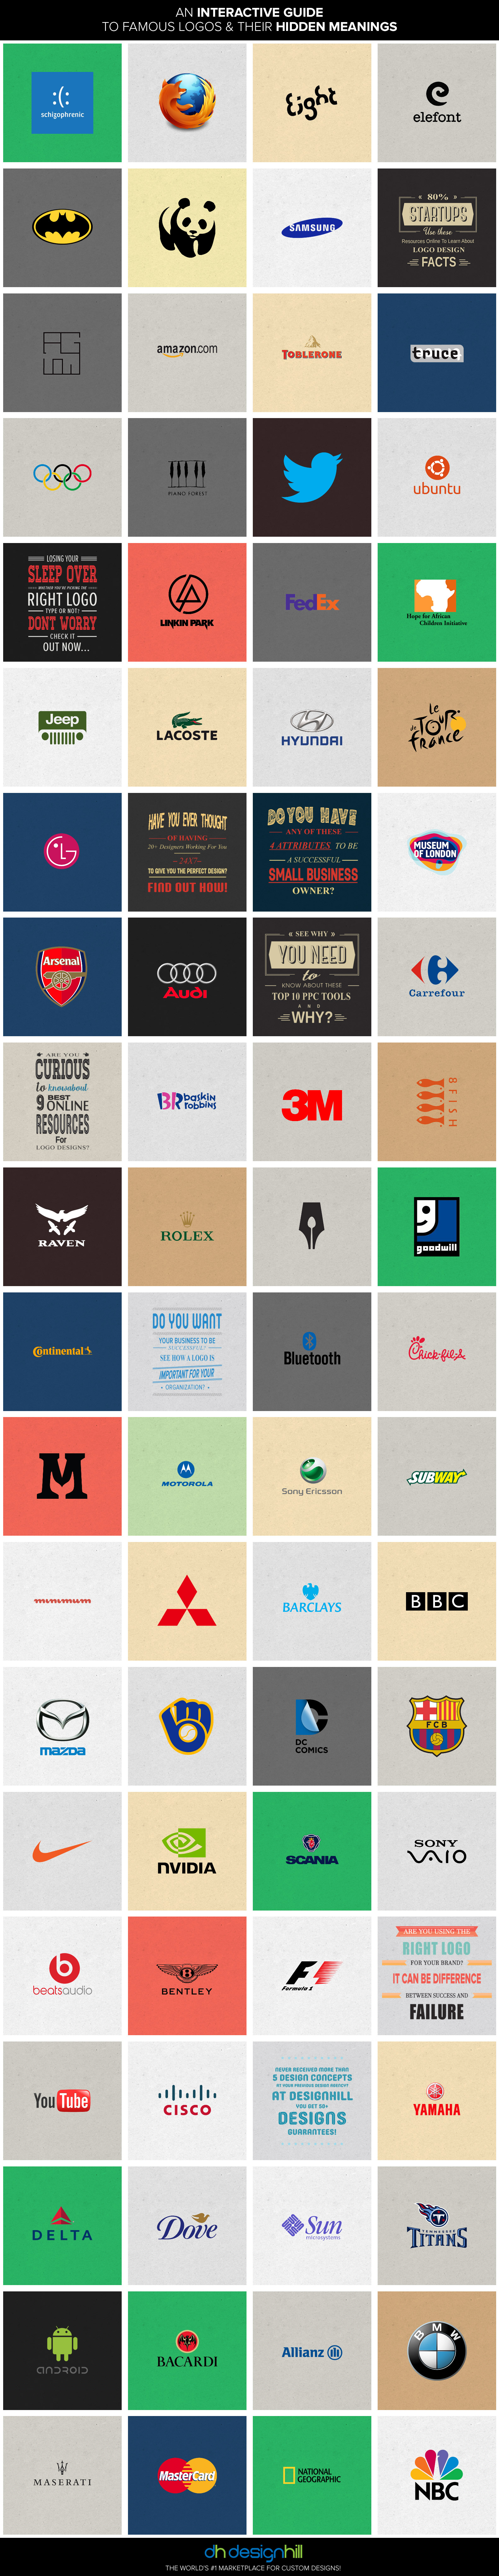 famous company logos with hidden meanings amp messages